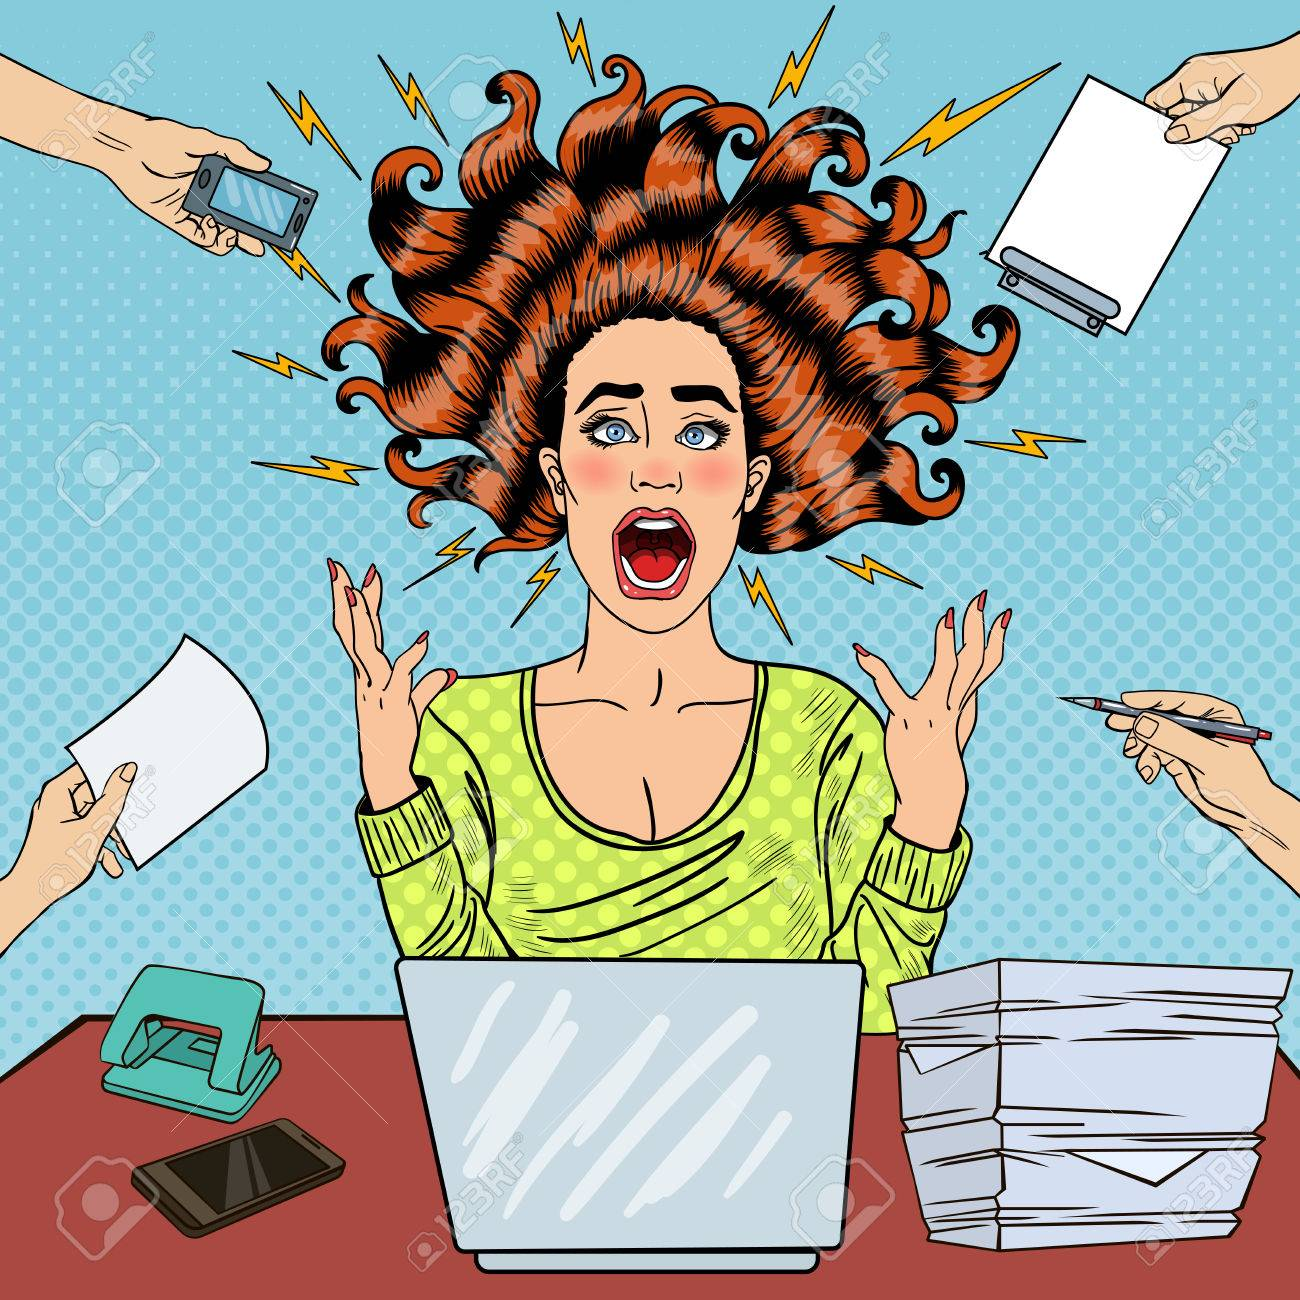 Pop Art Aggressive Furious Screaming Woman with Laptop at Office Work. Vector illustration - 64745751